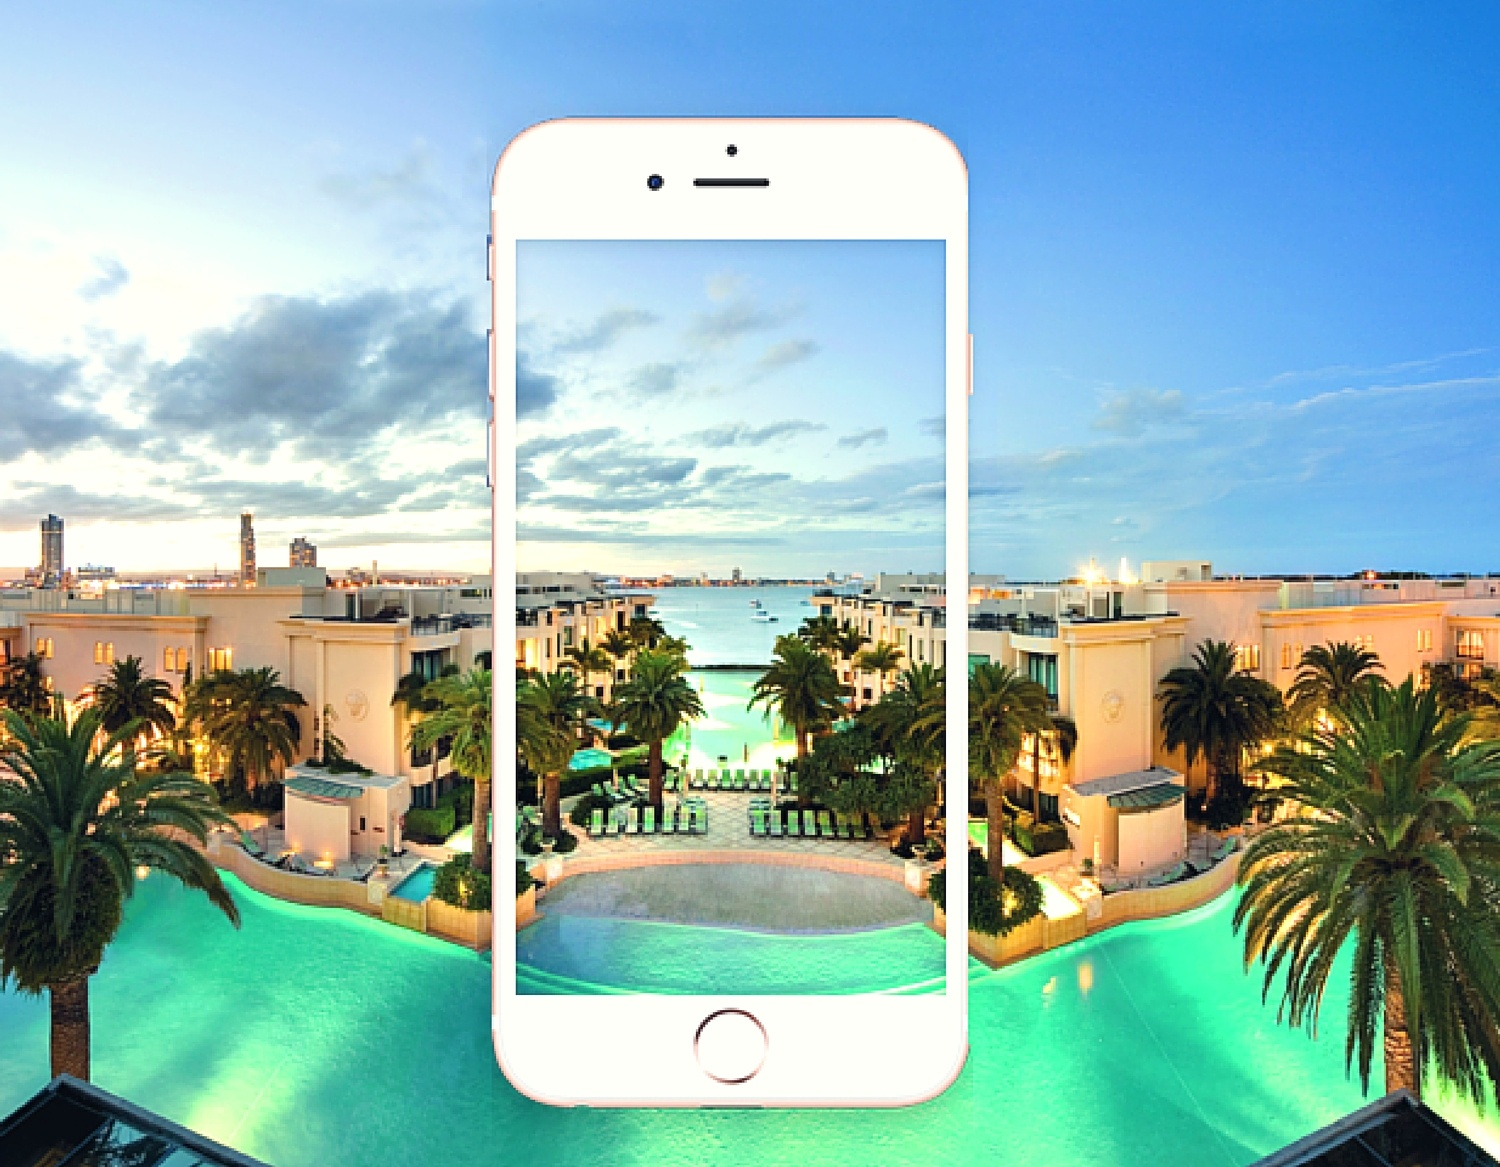 Facebook's new 360-degree images open new marketing opportunities for hoteliers